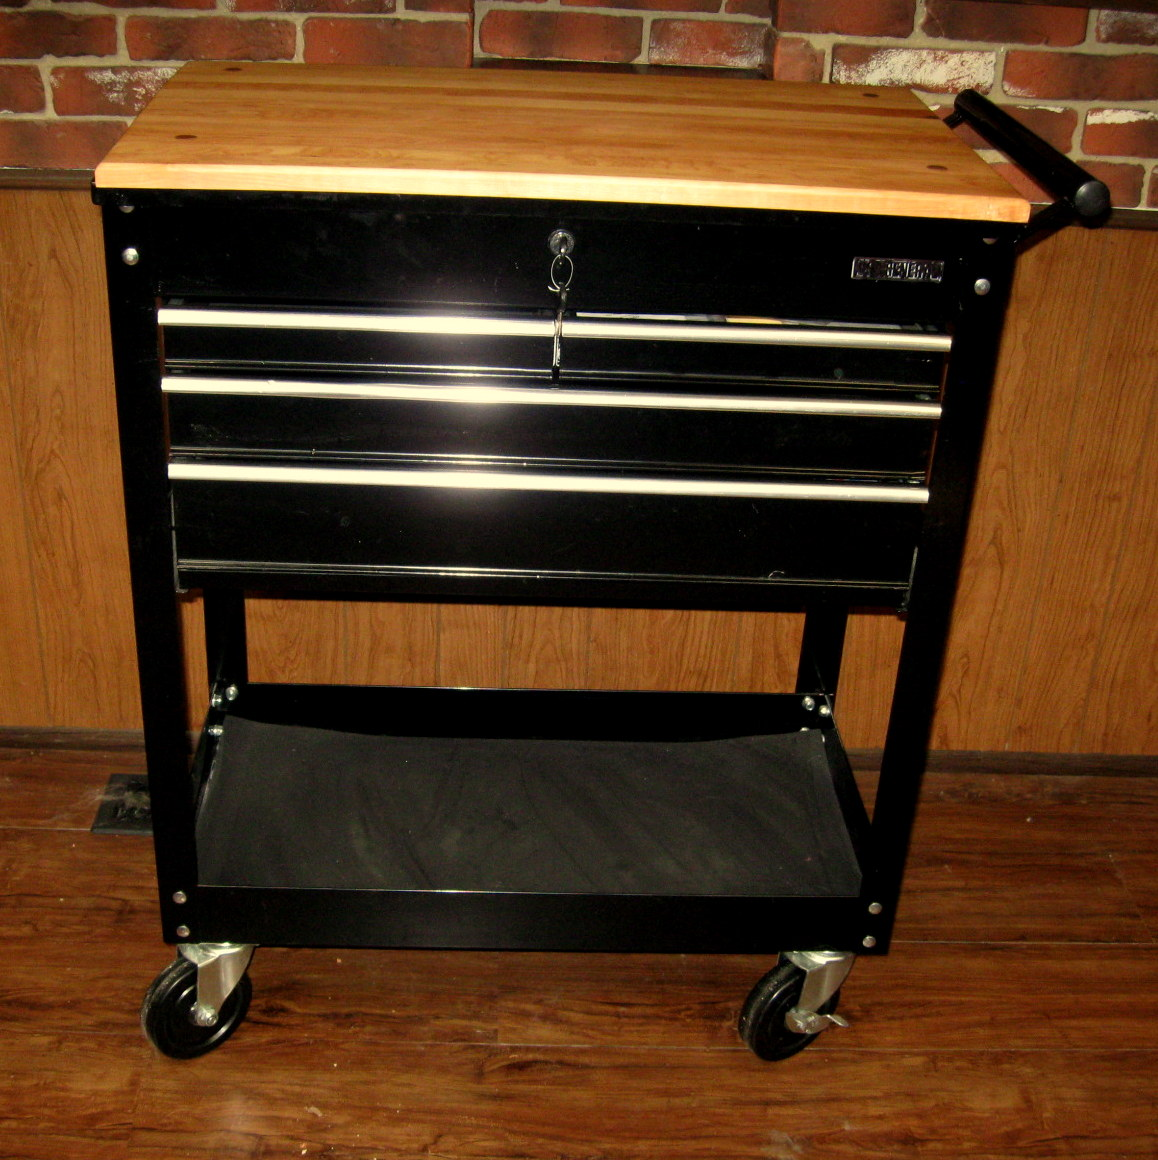 Wheeled Kitchen Islands Diy Amazing Rolling Kitchen Island - See Jane Drill